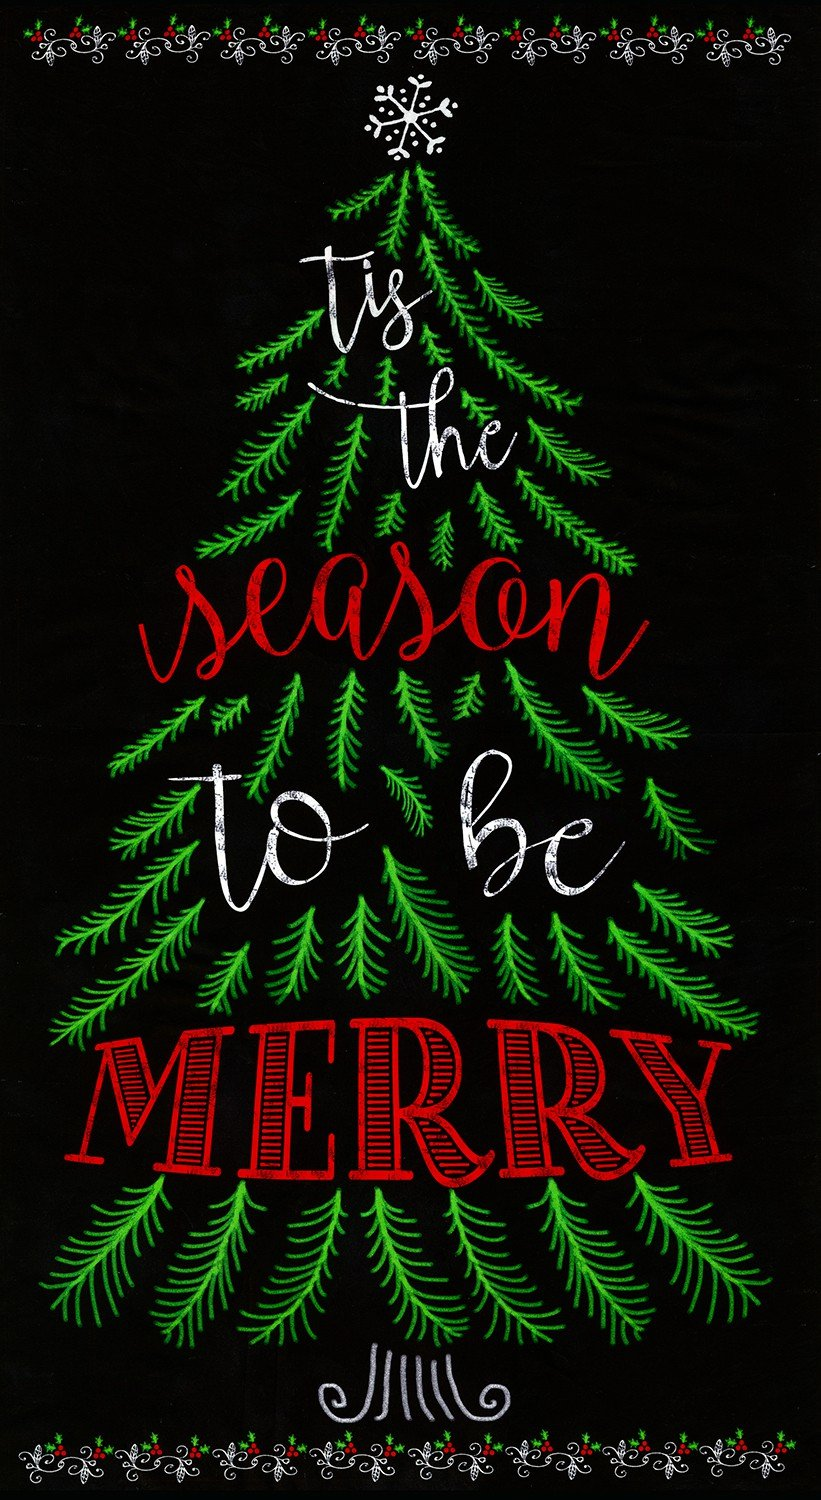 Be Merry Tis The Season Panel 24 inches